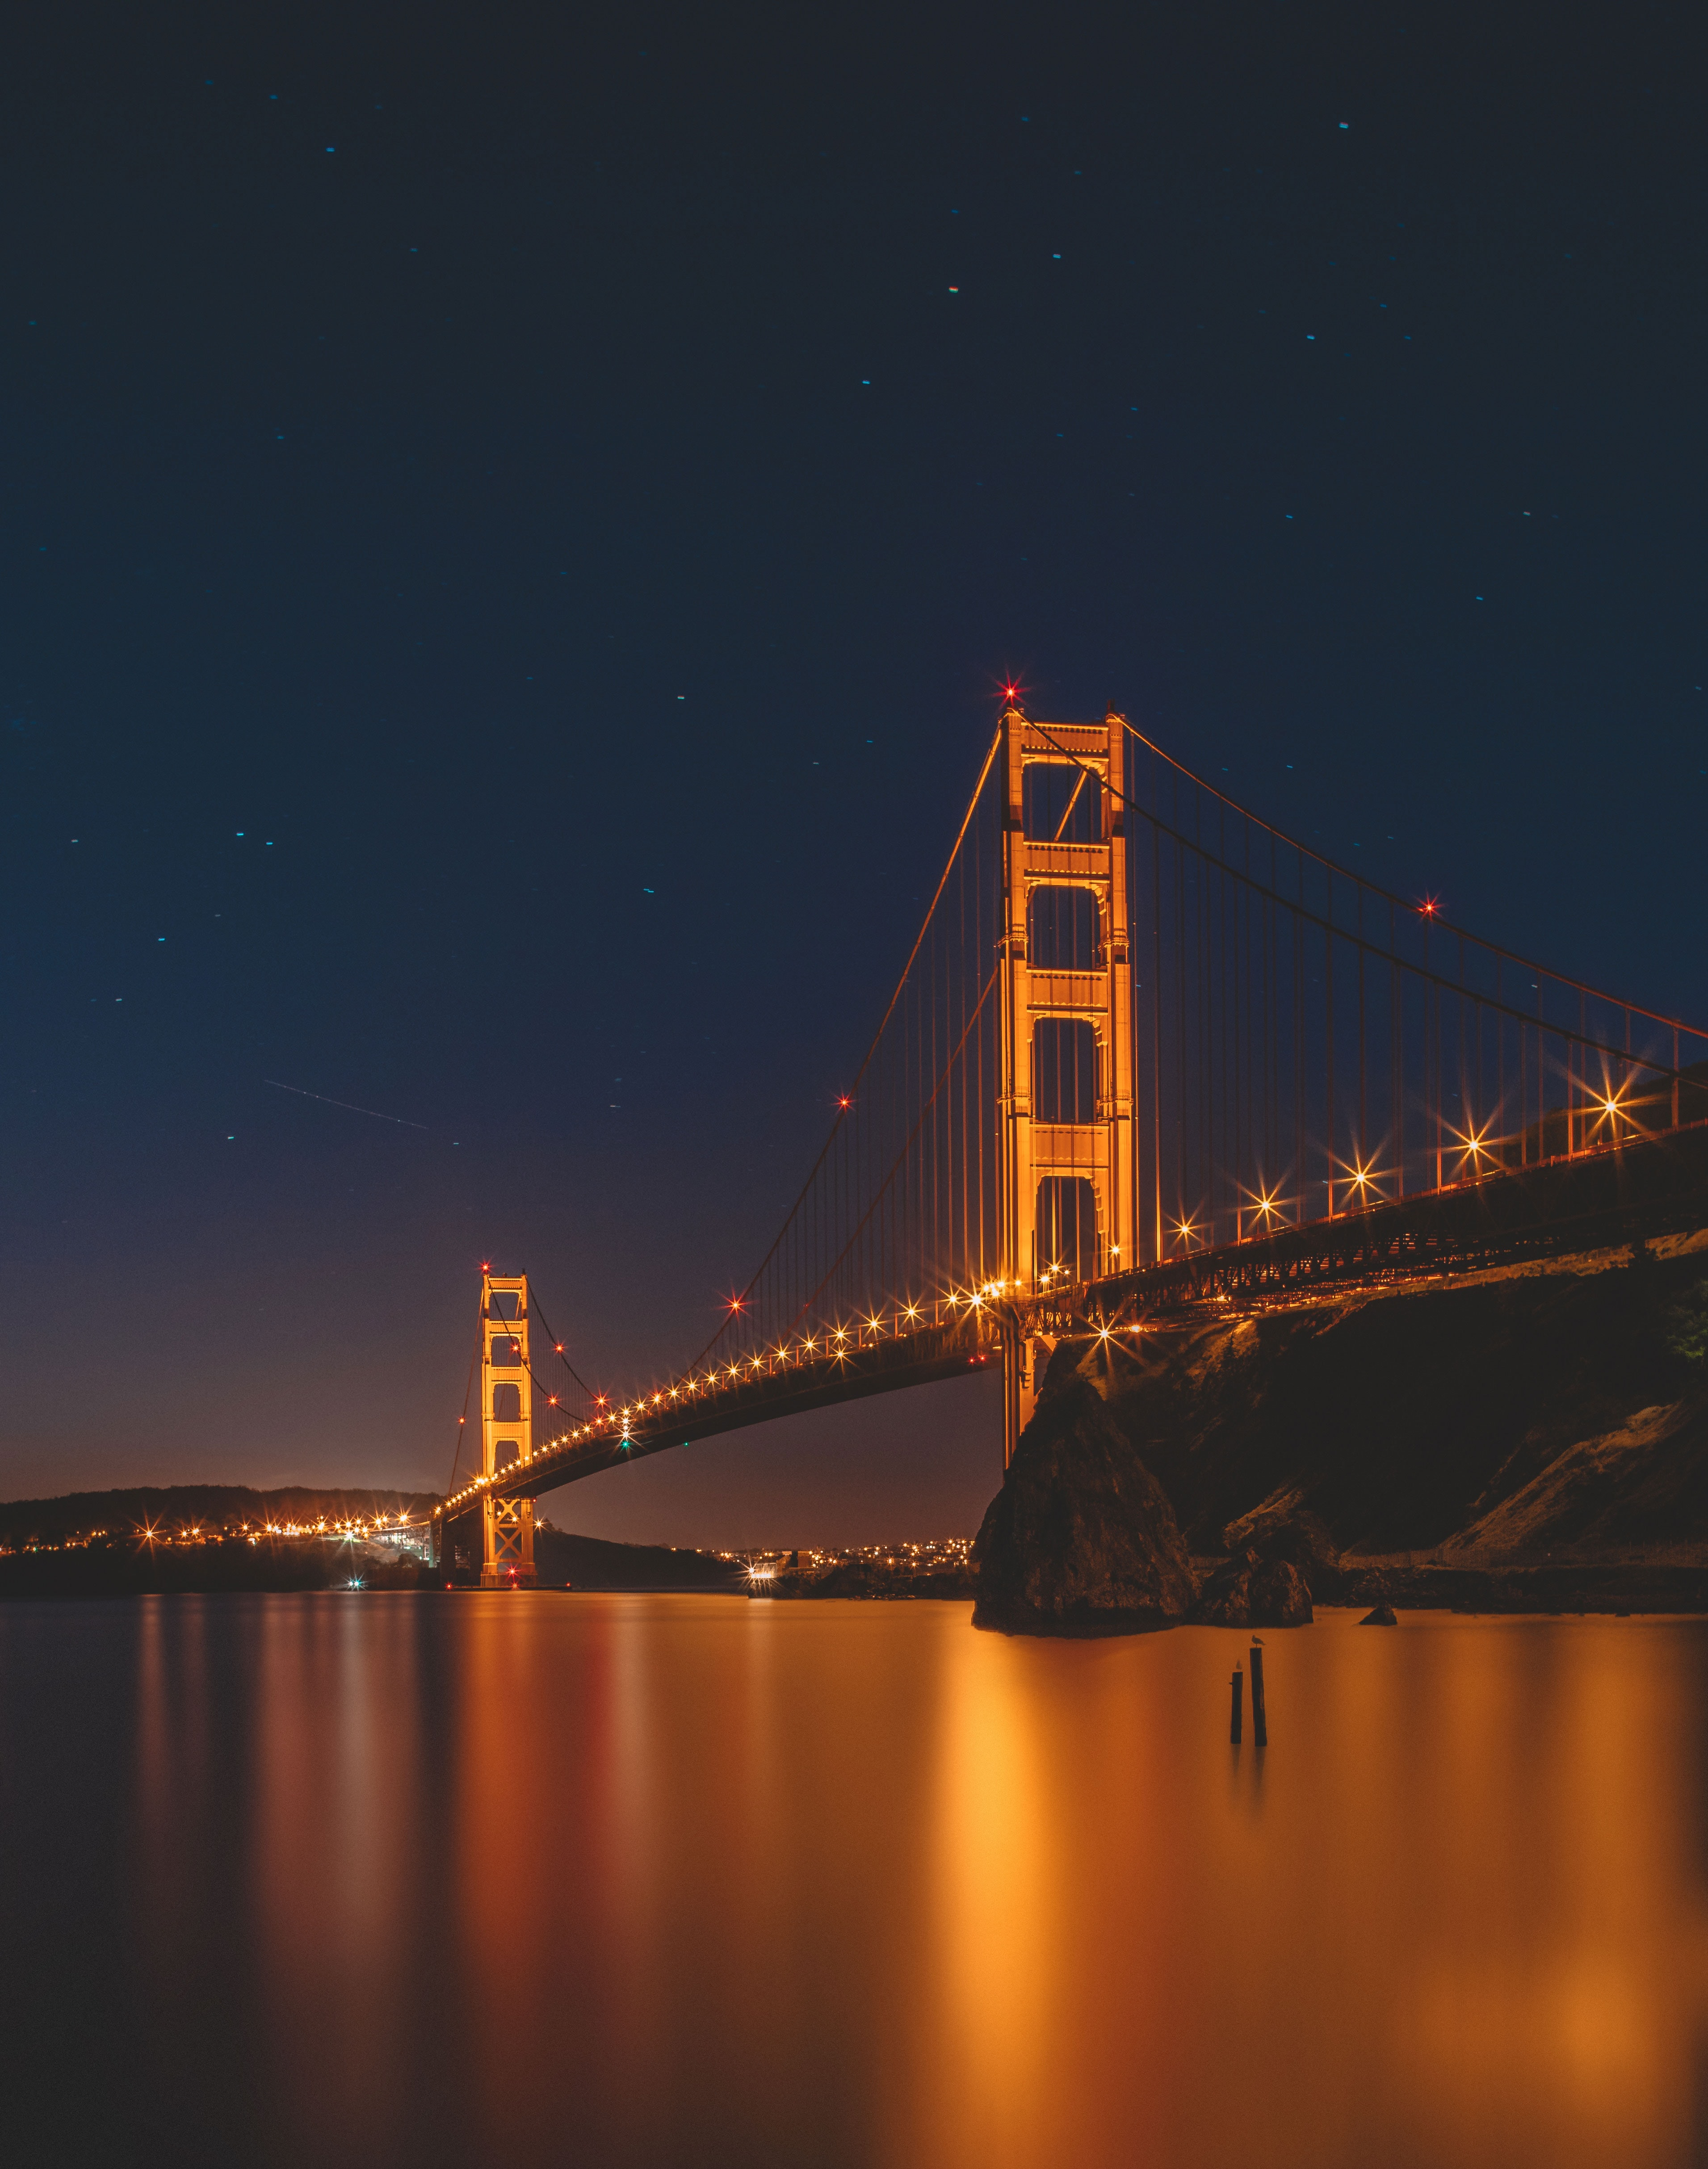 A picturesque shot of San Francisco Golden Gate Bridge with lights reflecting in water below